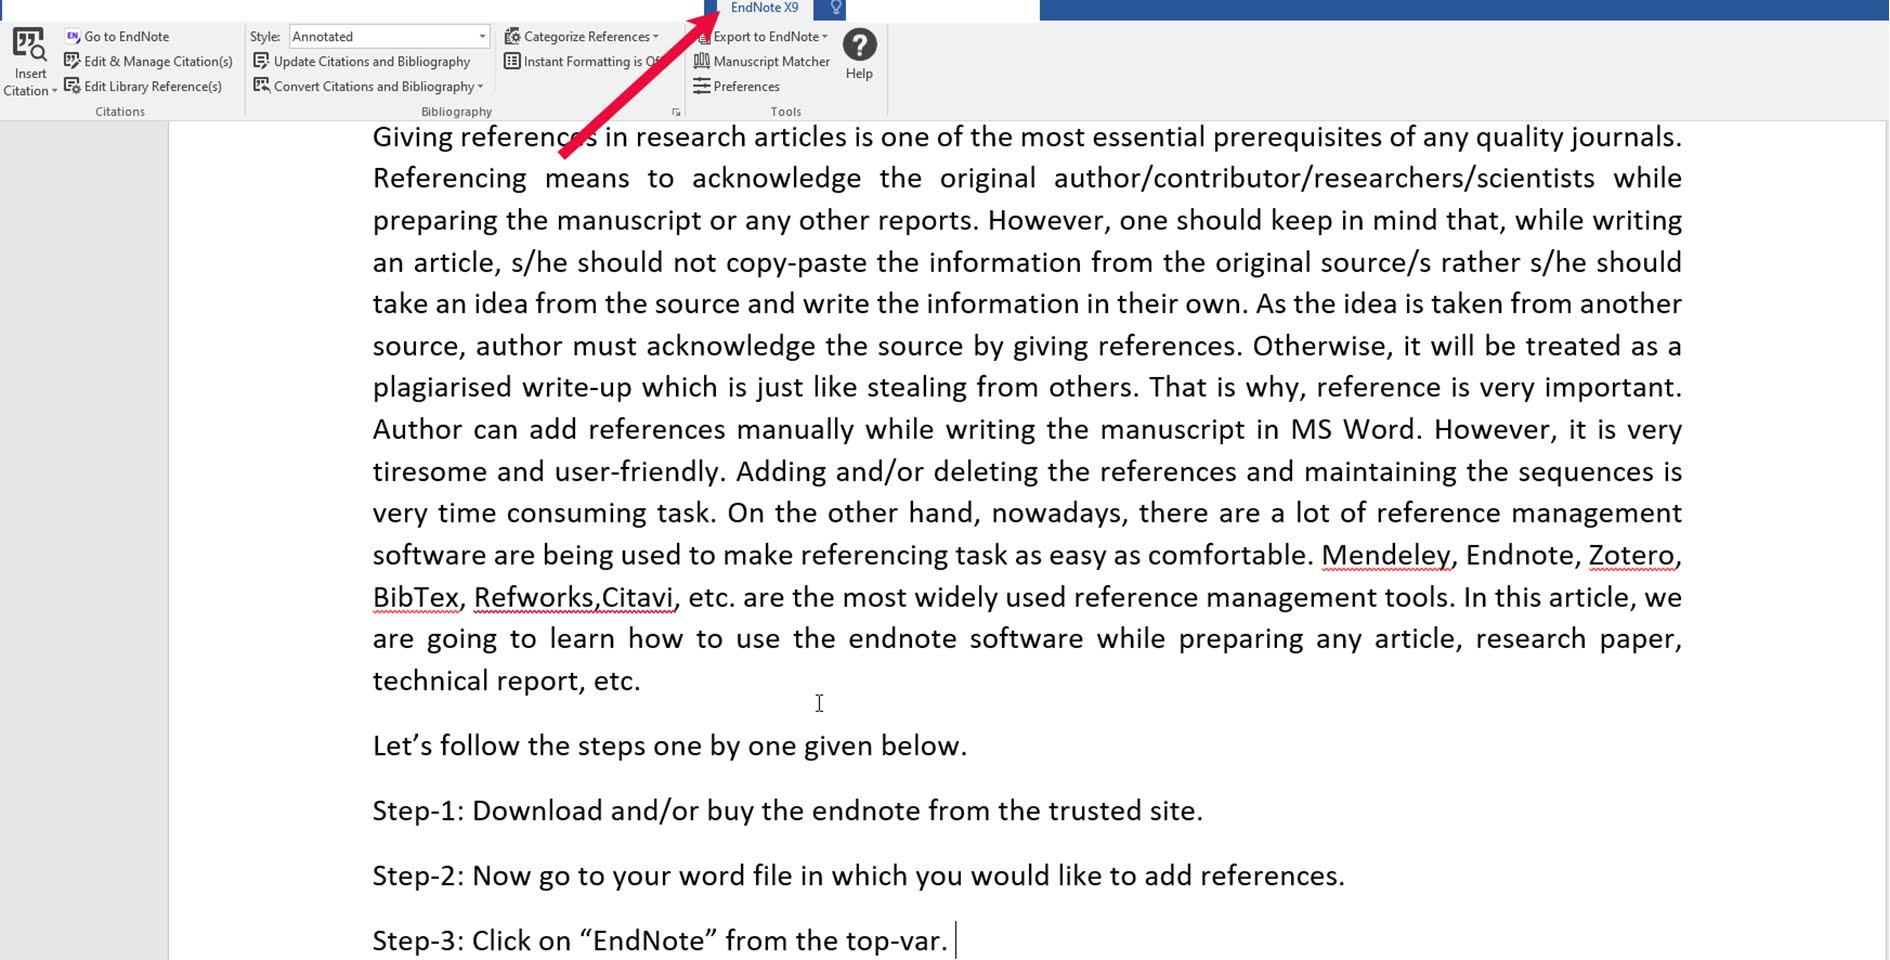 1. Reference Management by using EndNote